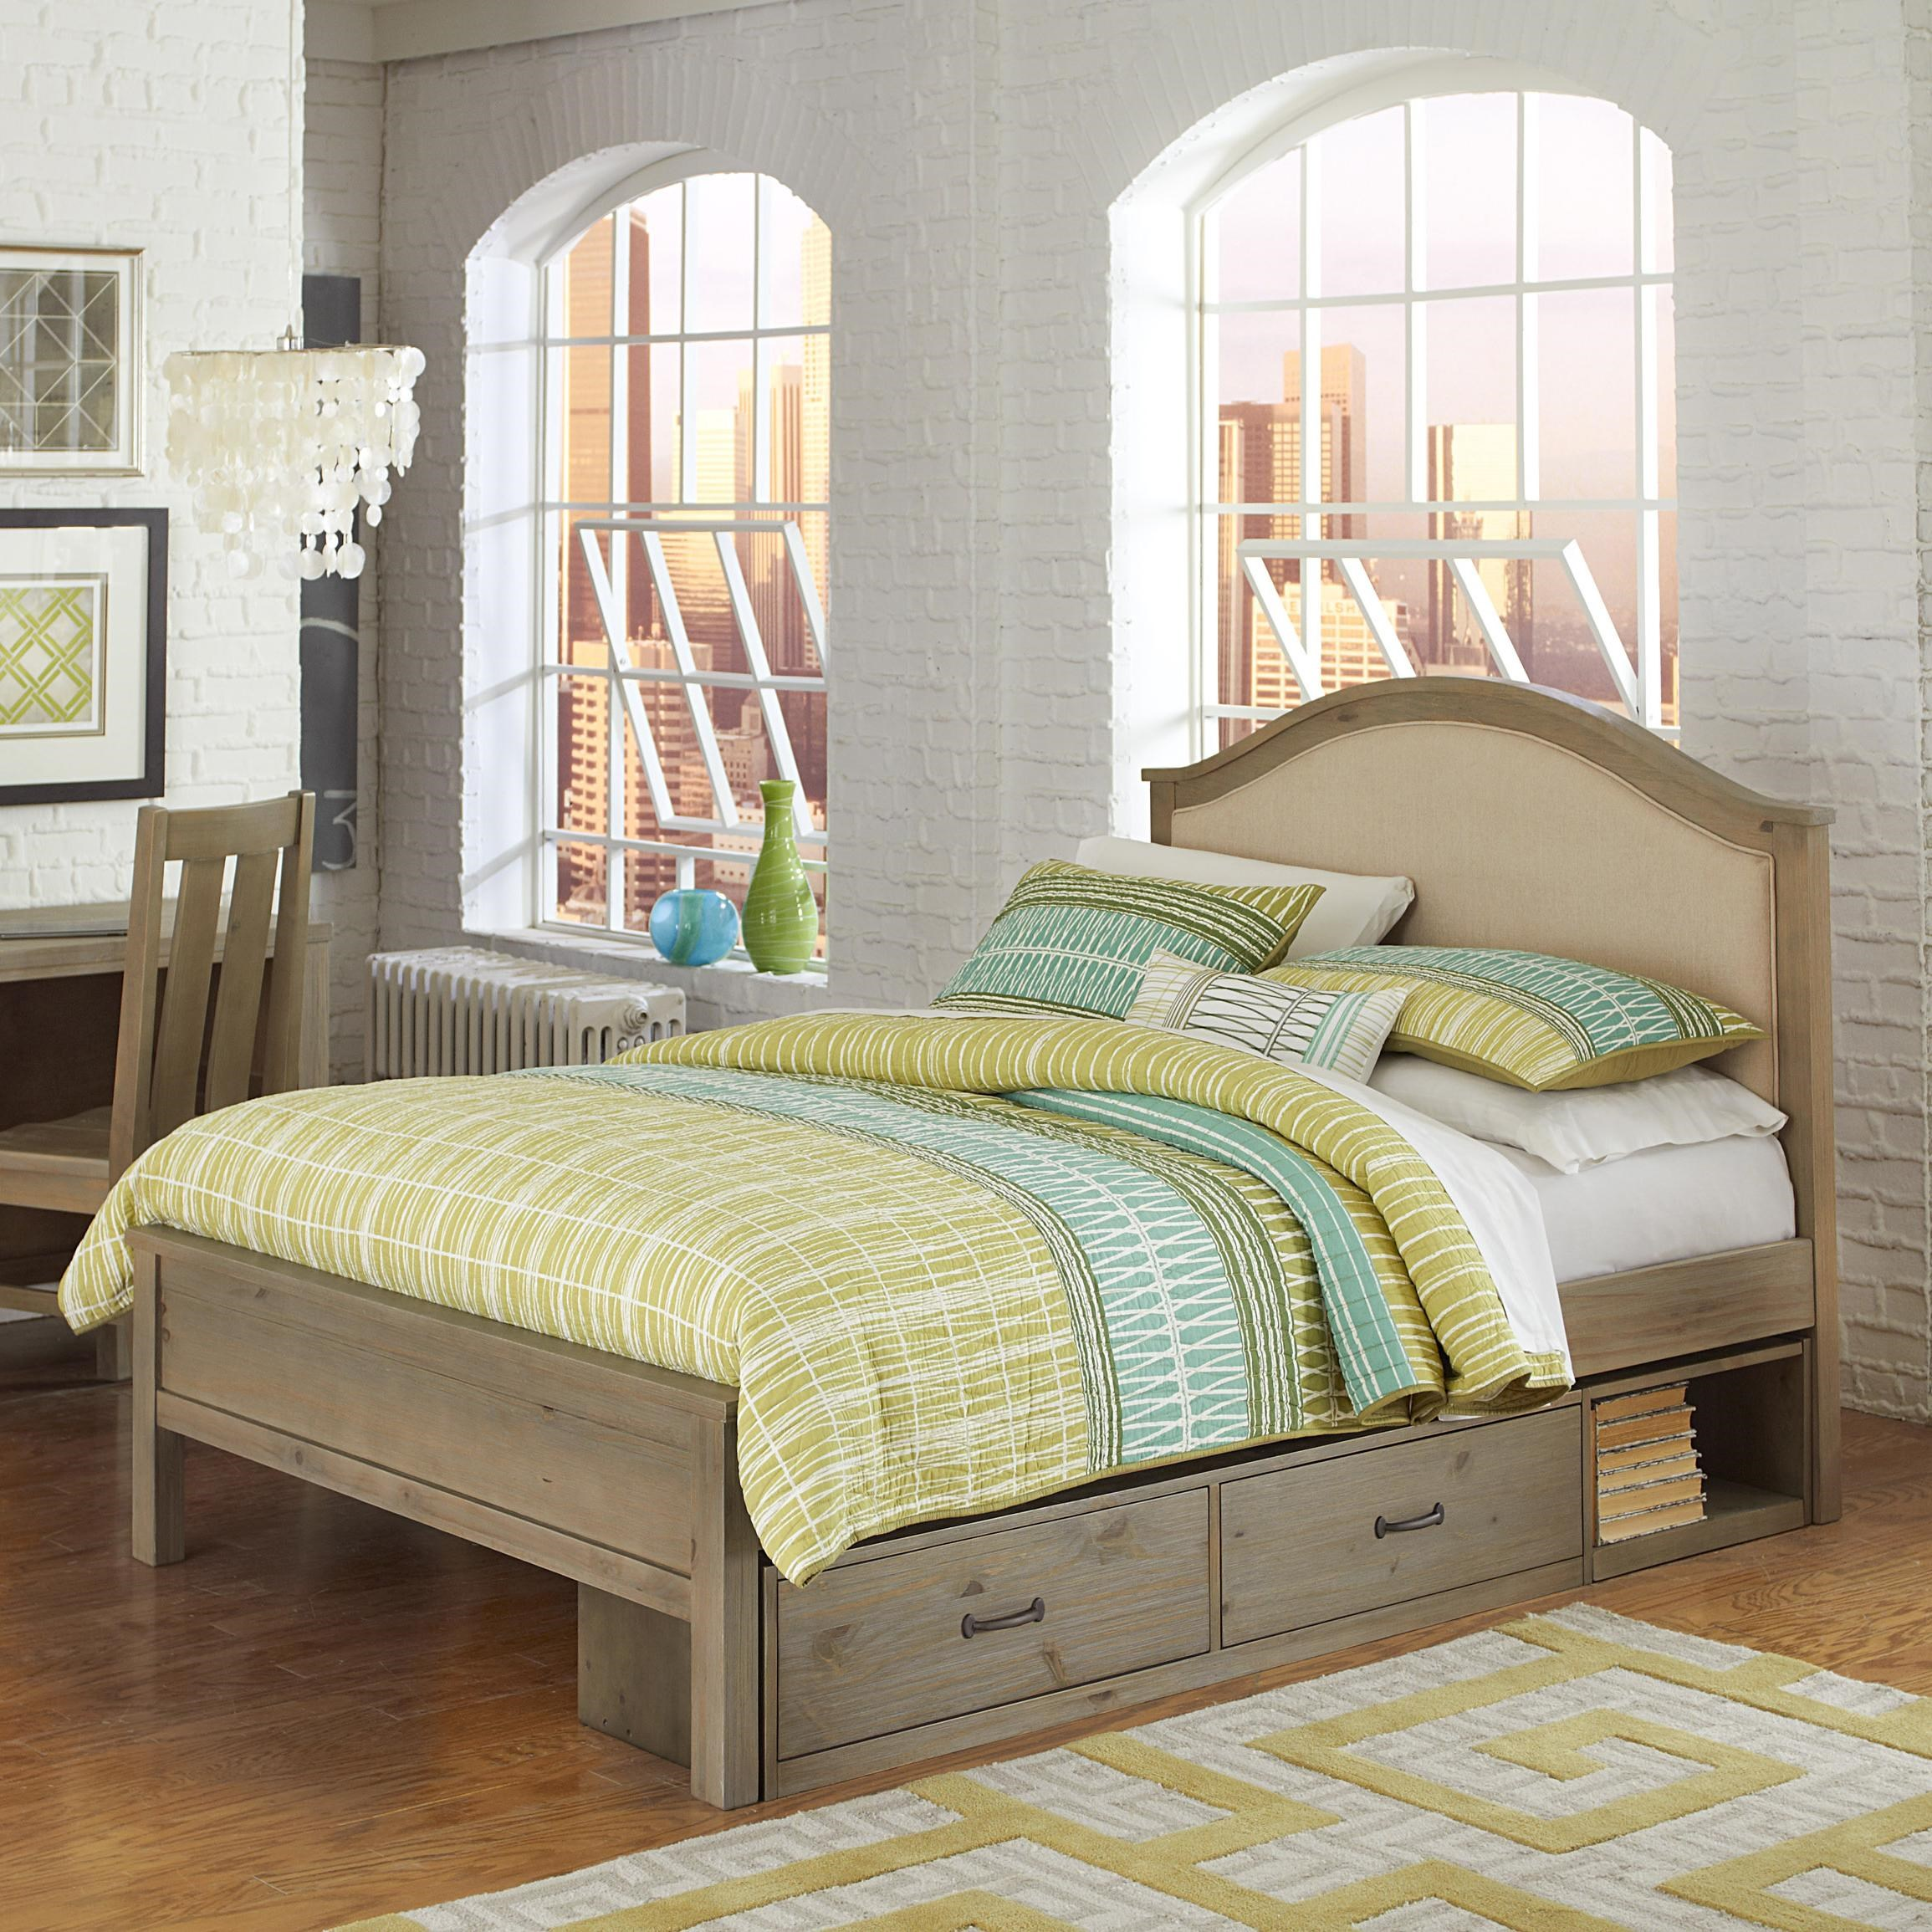 low platform beds with storage.  Platform NE Kids Highlands Full Bailey Bed With Cream Upholstered Headboard And  Under Storage And Low Platform Beds With